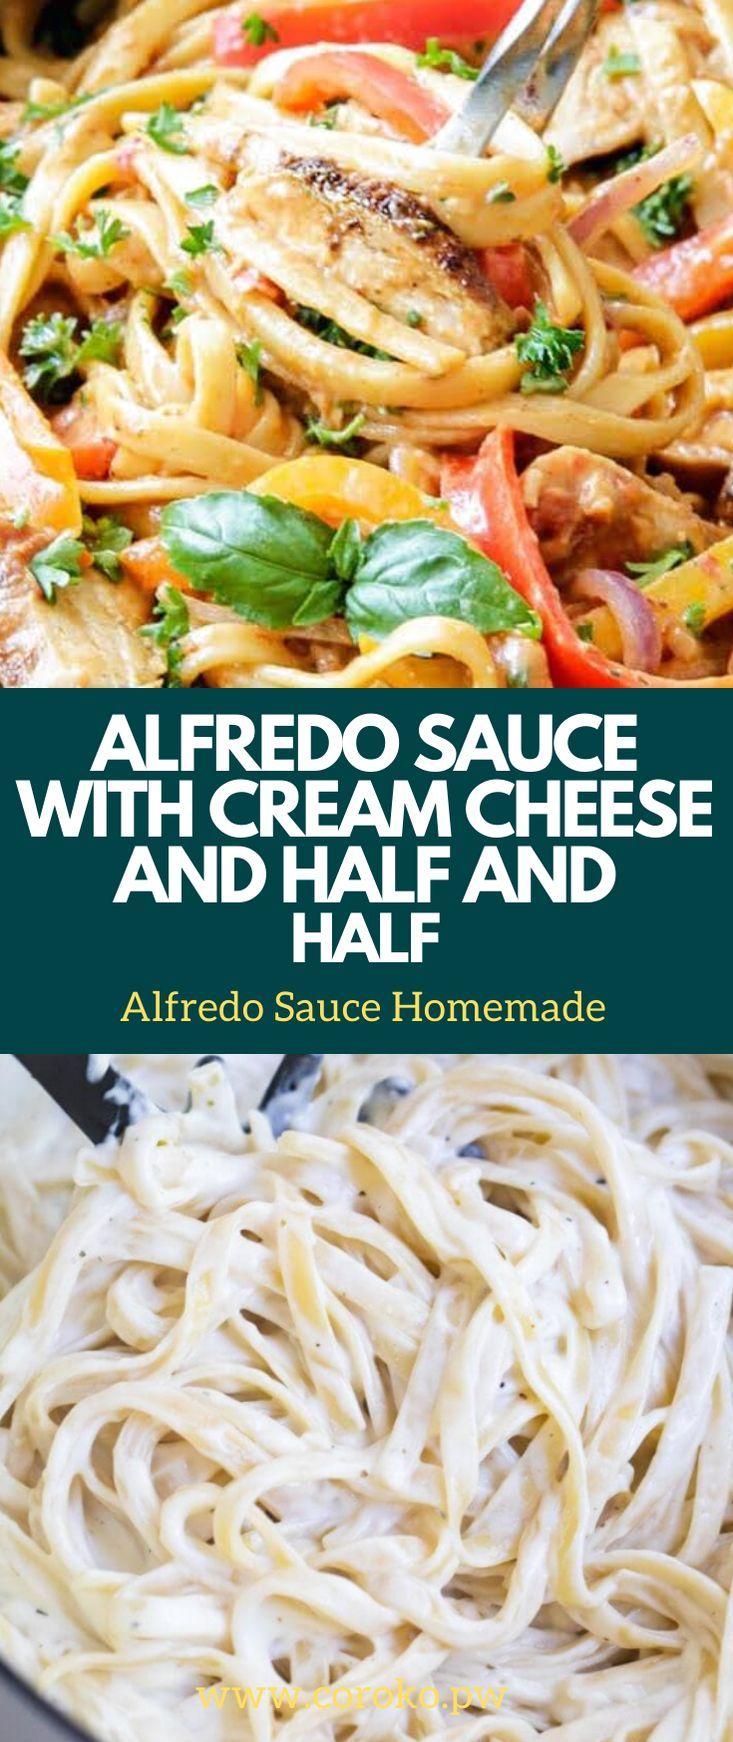 Alfredo Sauce With Cream Cheese And Half And Half Alfredo Sauce Recipe Homemade Cooking Recipes Alfredo Recipe With Half And Half